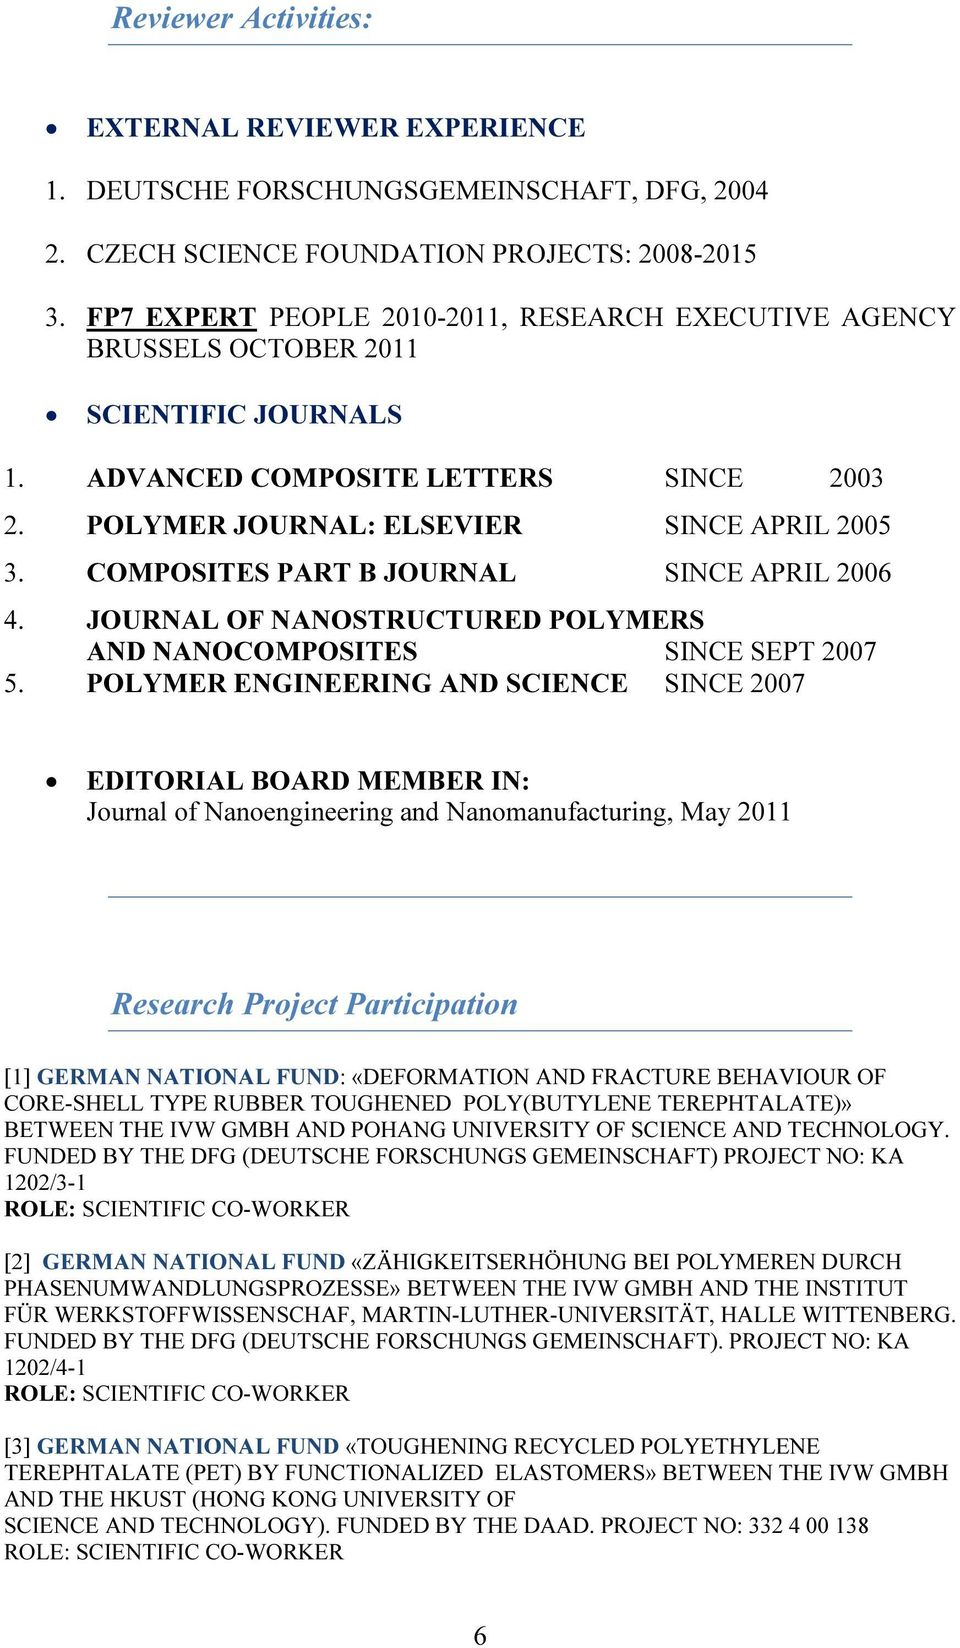 COMPOSITES PART B JOURNAL SINCE APRIL 2006 4. JOURNAL OF NANOSTRUCTURED POLYMERS AND NANOCOMPOSITES SINCE SEPT 2007 5.